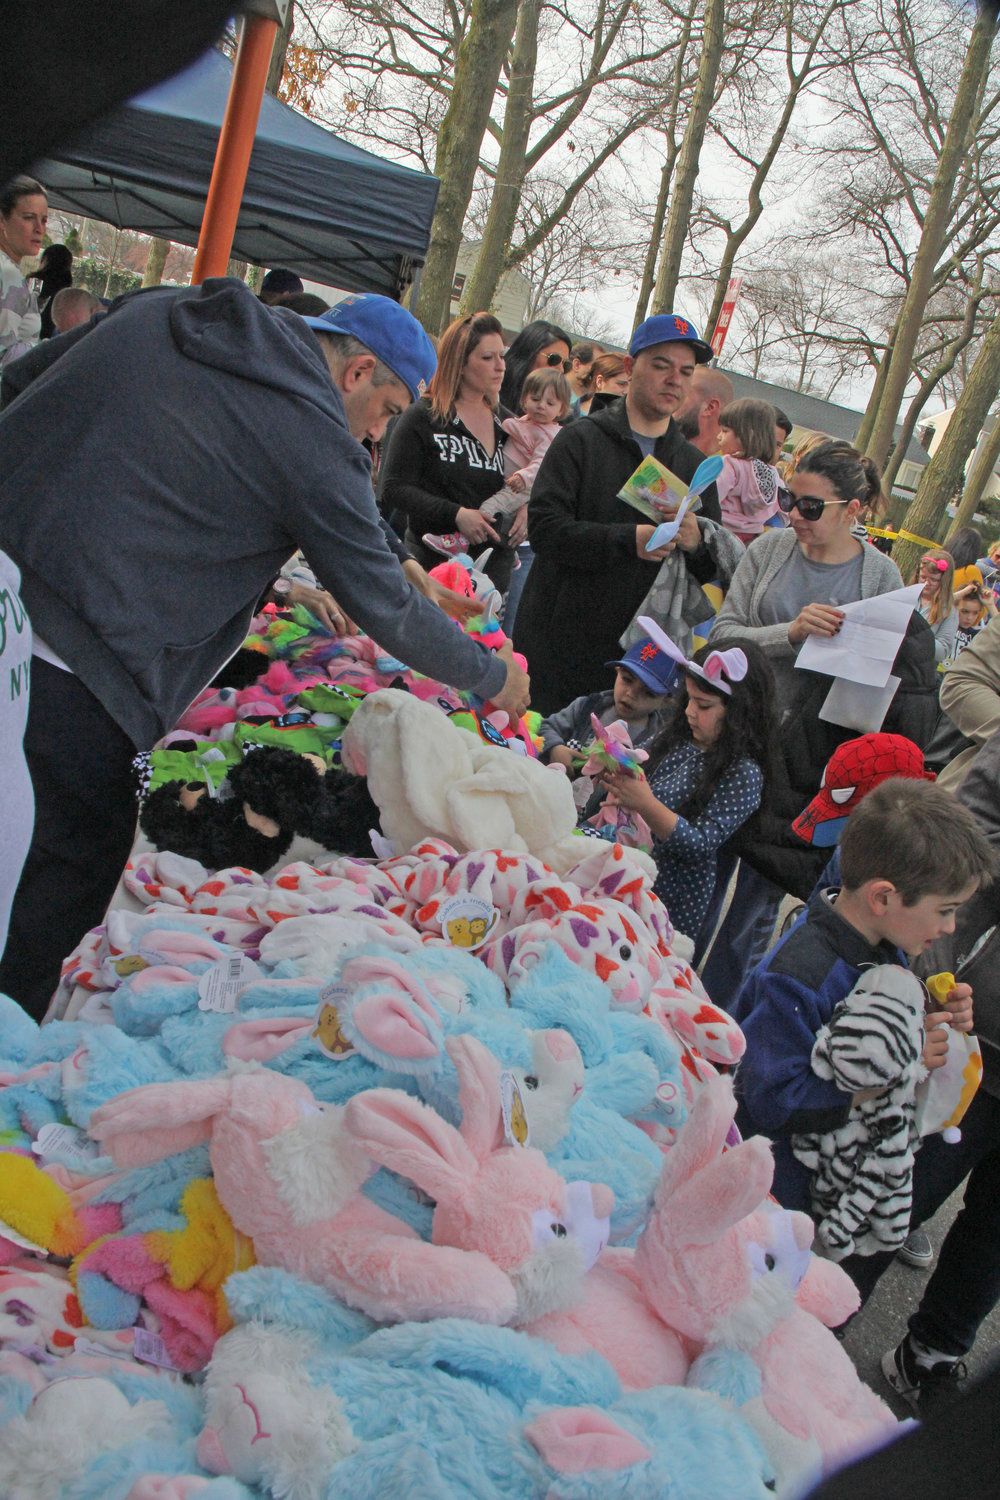 Many stuffed rabbits were sold during the event.